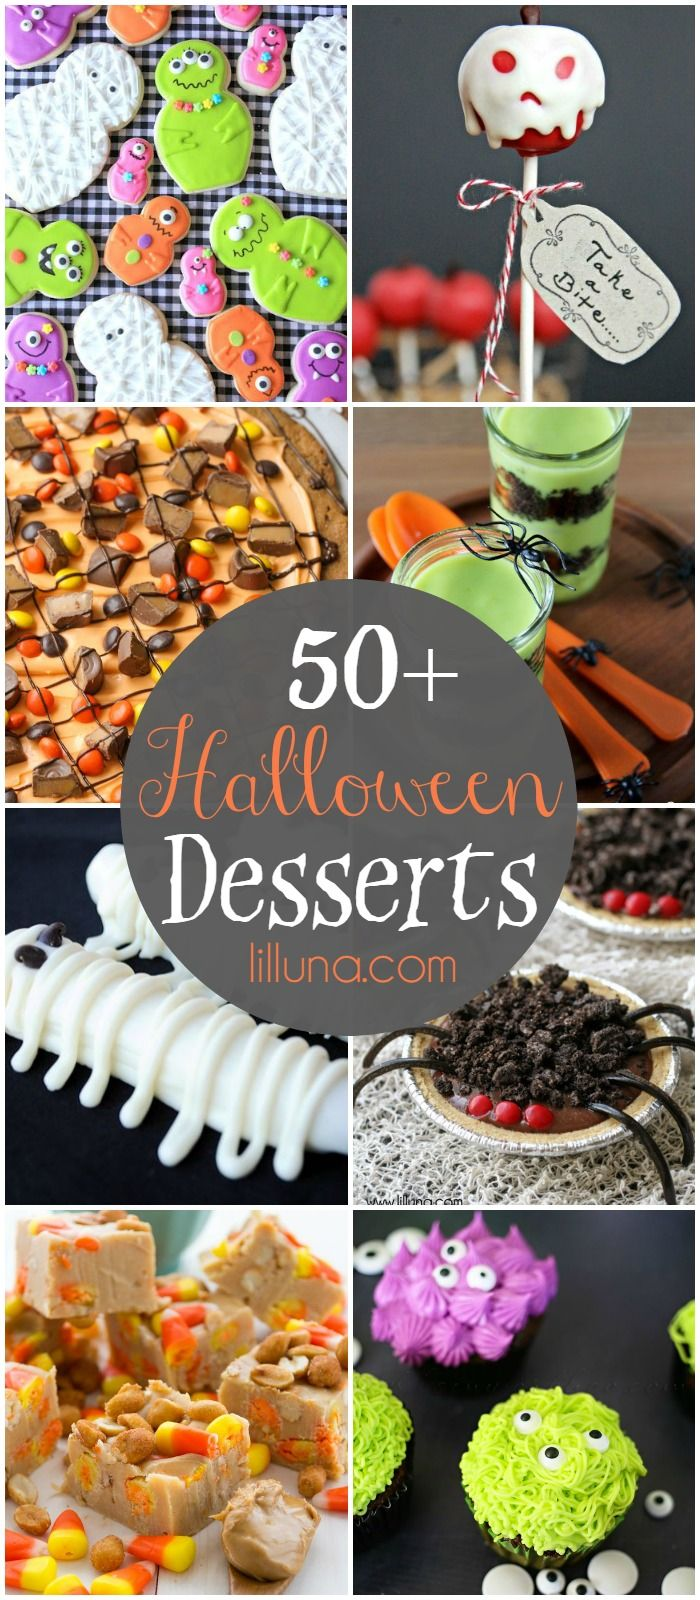 A roundup of 50+ delicious and festive Halloween desserts!! Cupcakes, cookies, pies, and more! Check it out on { lilluna.com }